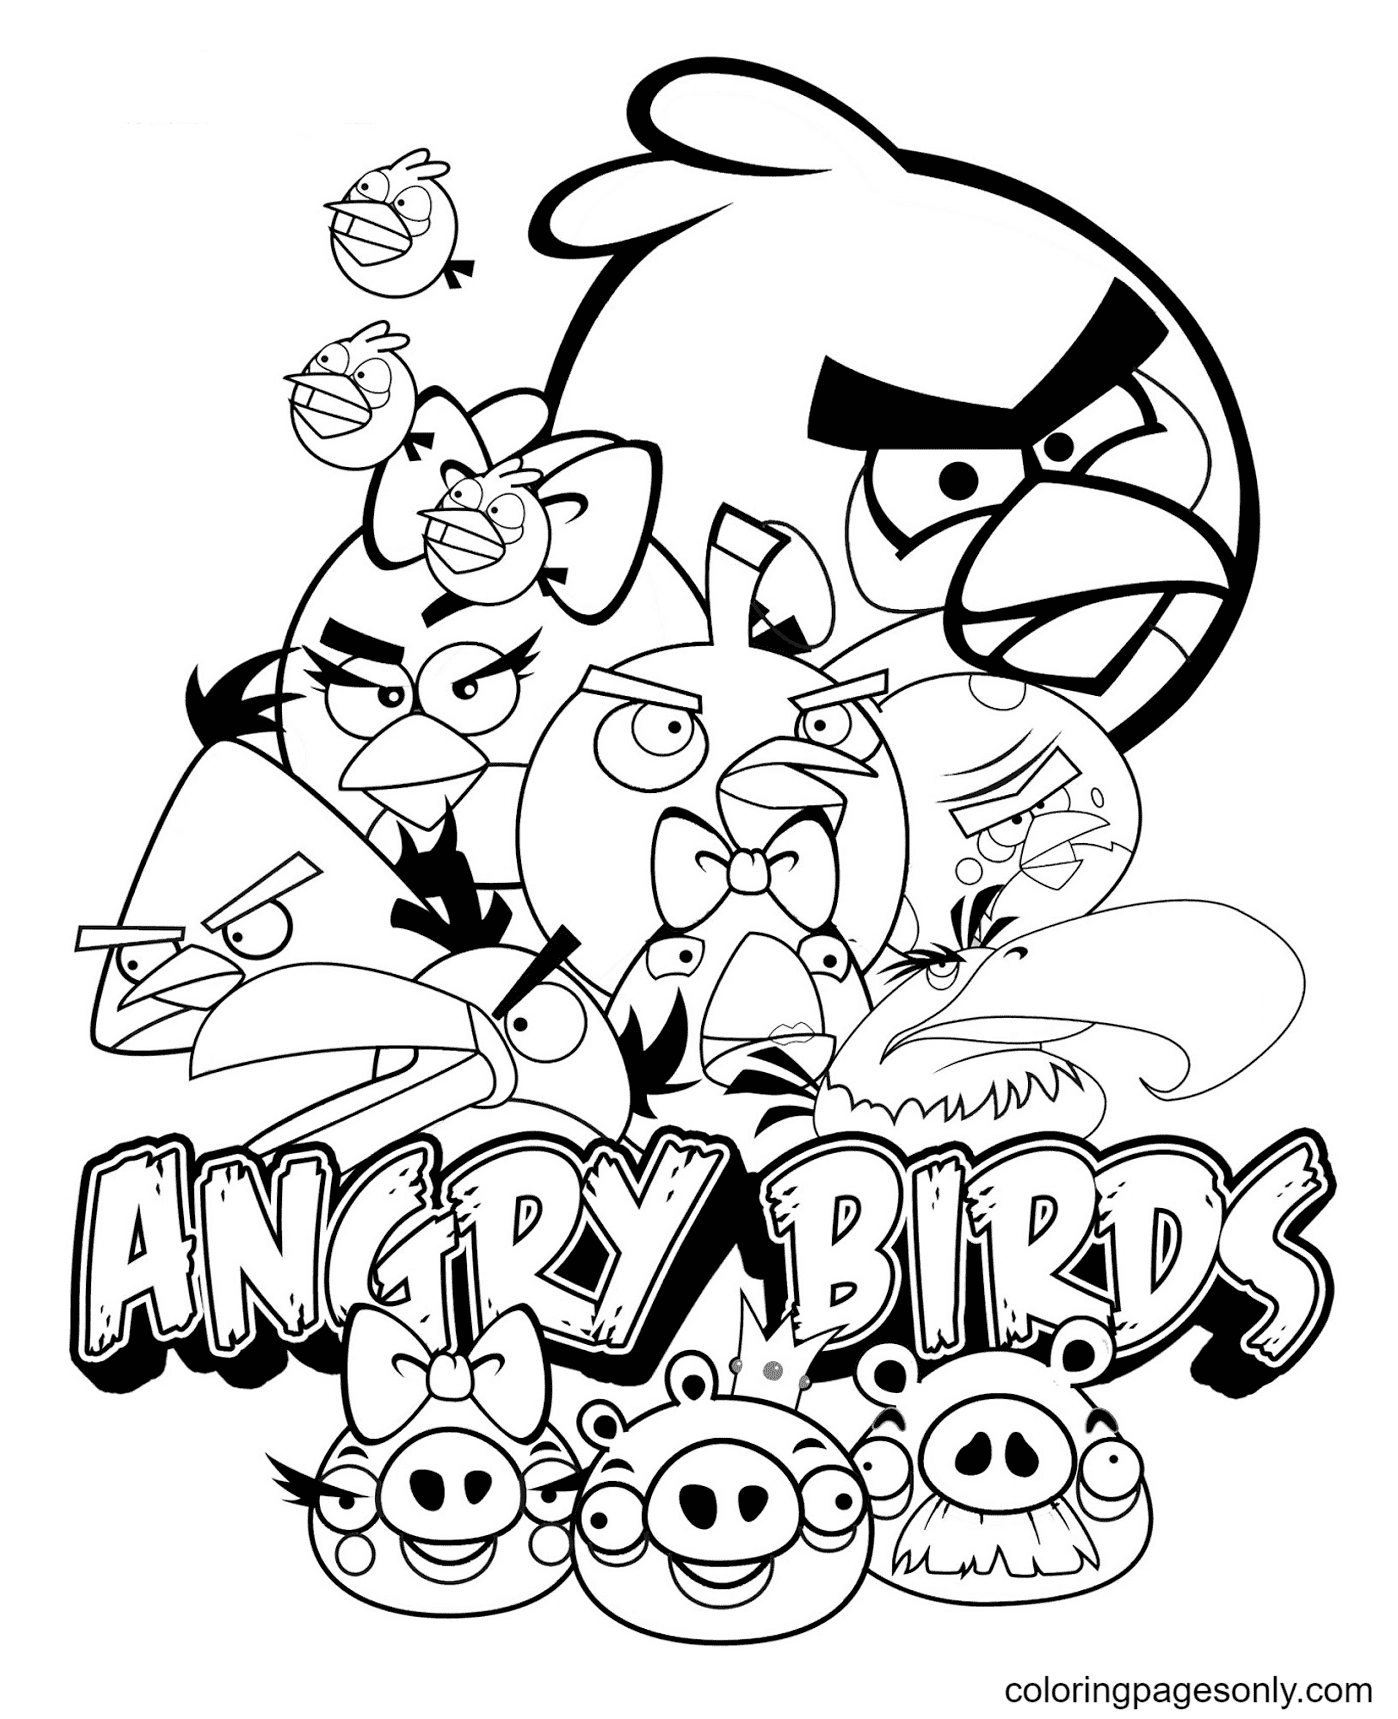 Printable Angry Birds Coloring Page